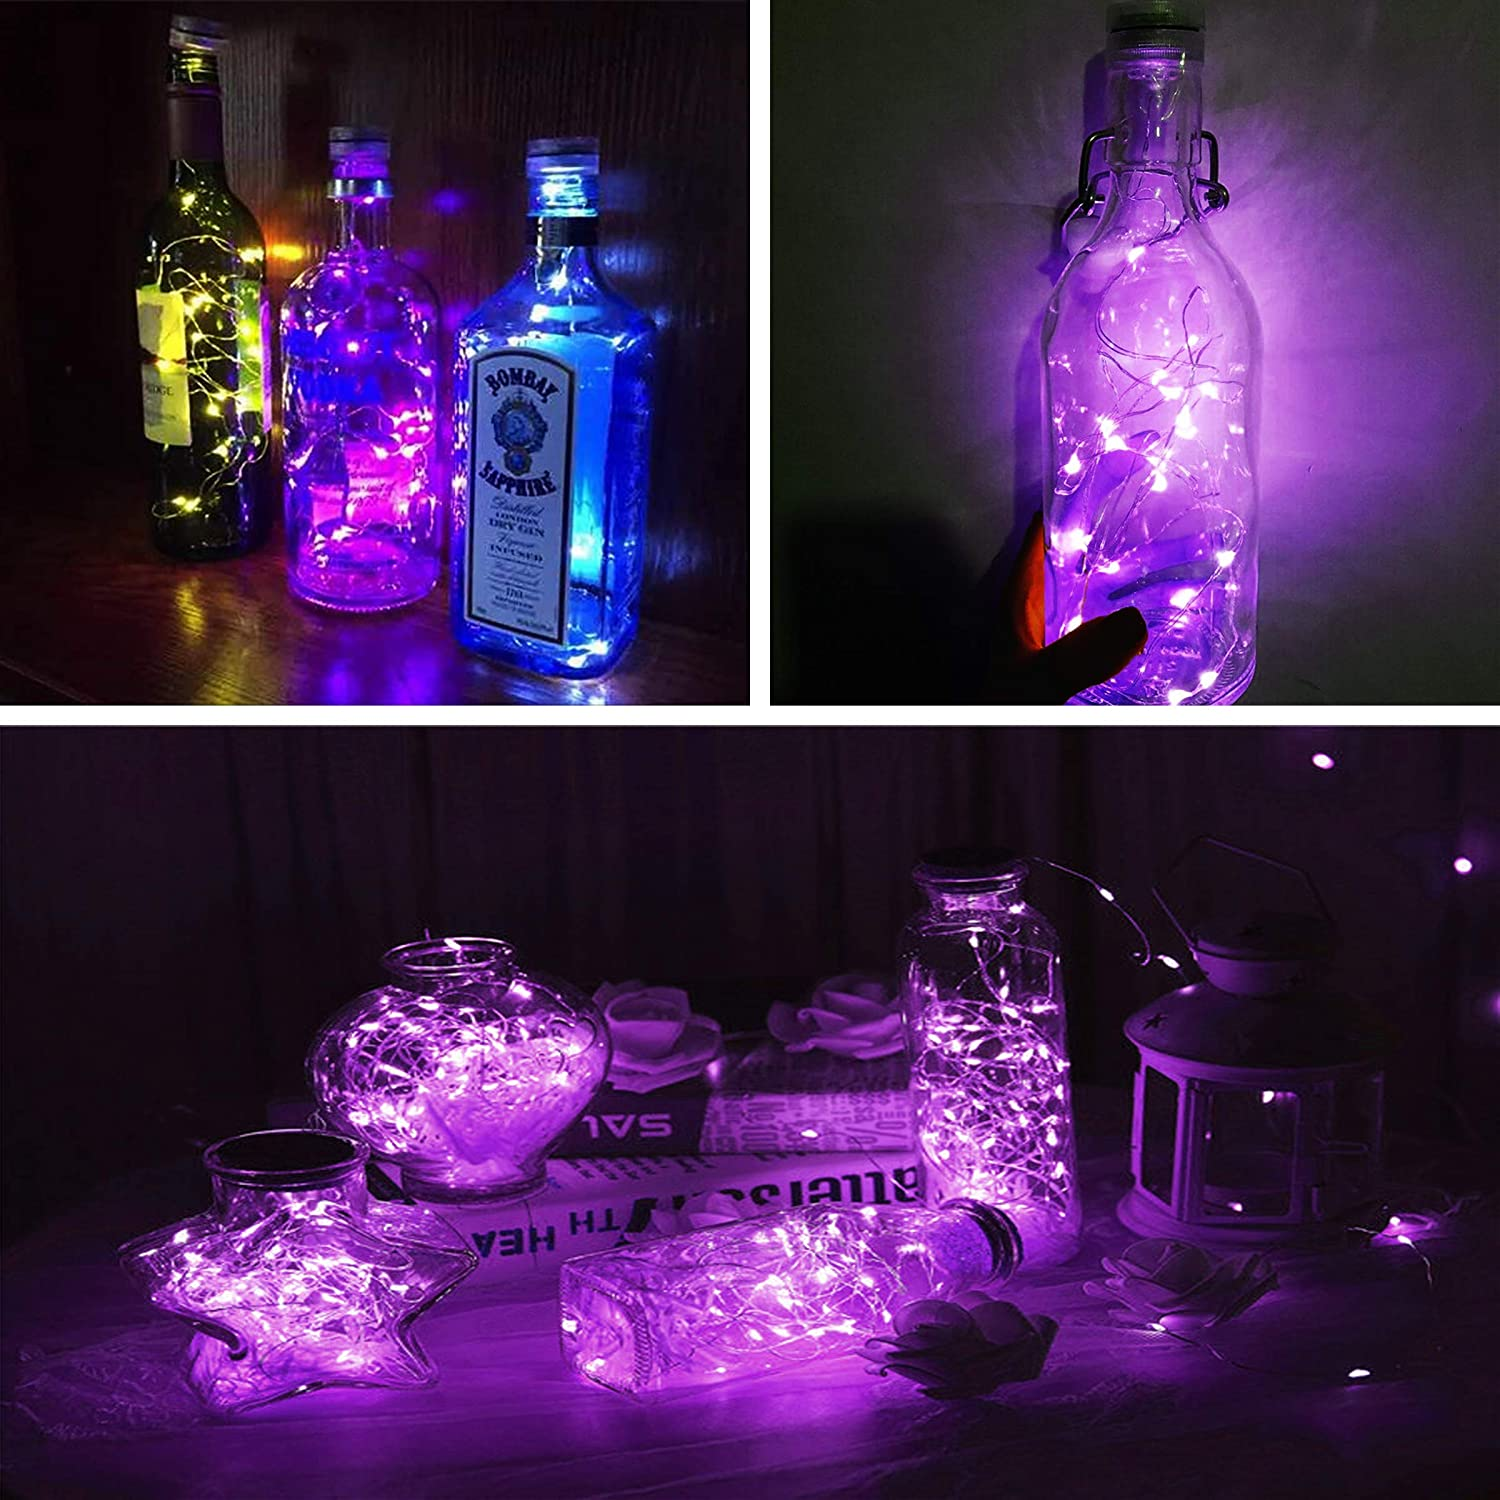 Purple LED Fairy Lights 20 LEDs Luces de alambre con botón Batería Starry Lights Fiesta de Navidad Wedding Bottle Table Decoration 8 Pack